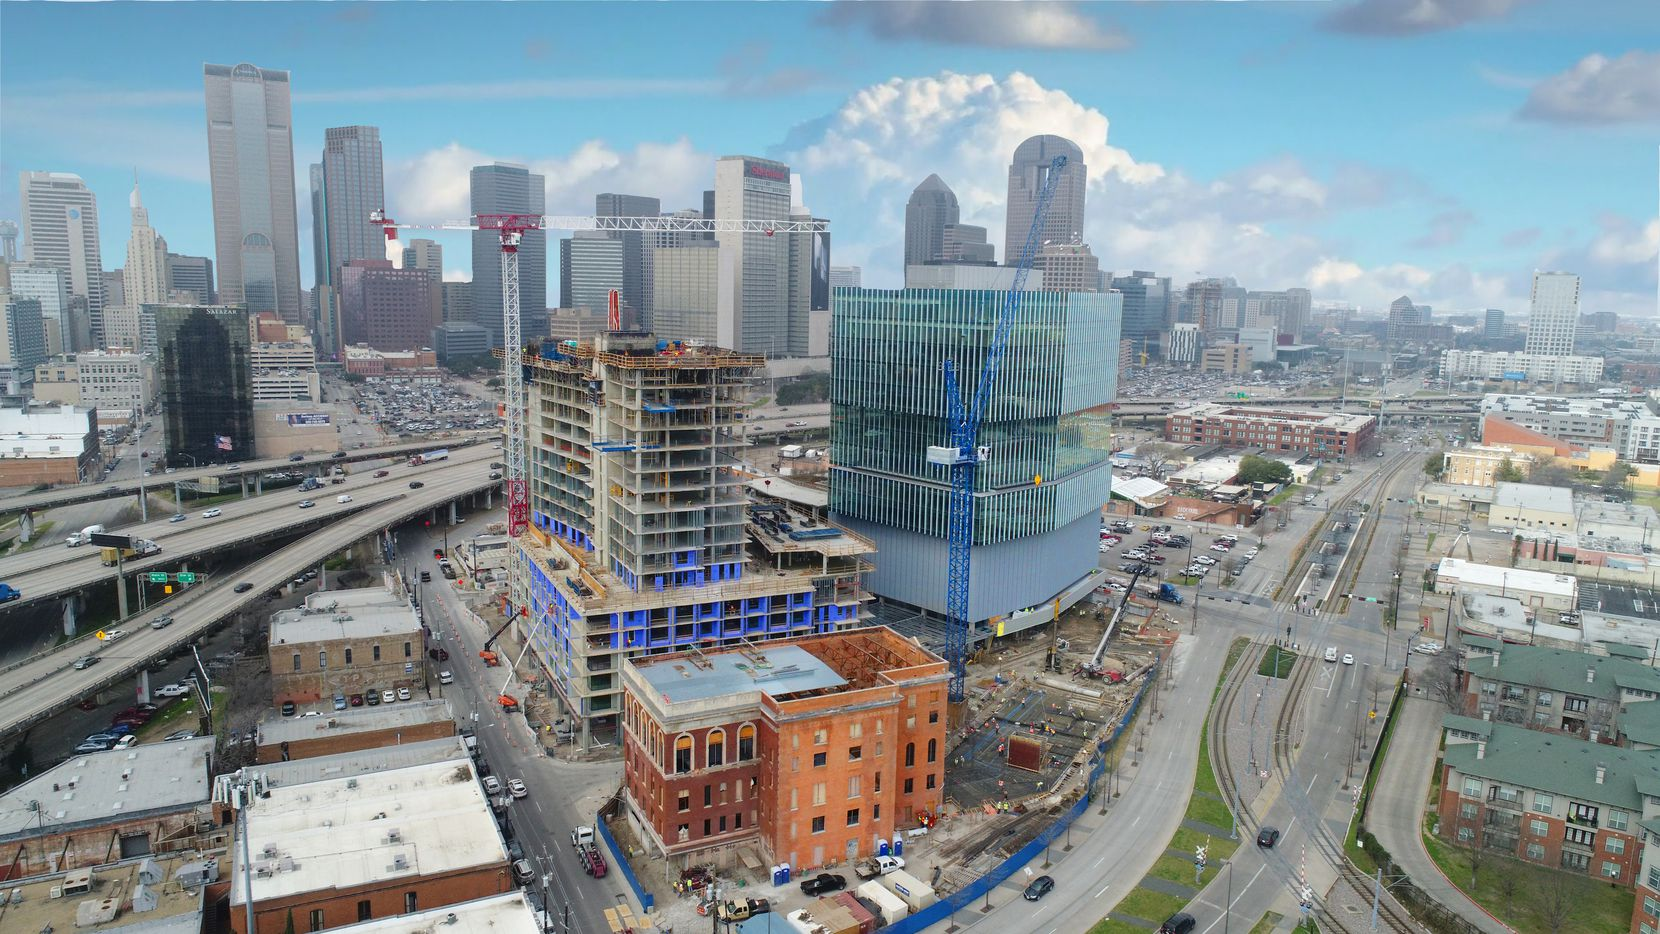 The Epic development on the eastern edge of downtown Dallas includes a new office tower, apartment high-rise and a luxury hotel in a restored landmark building.